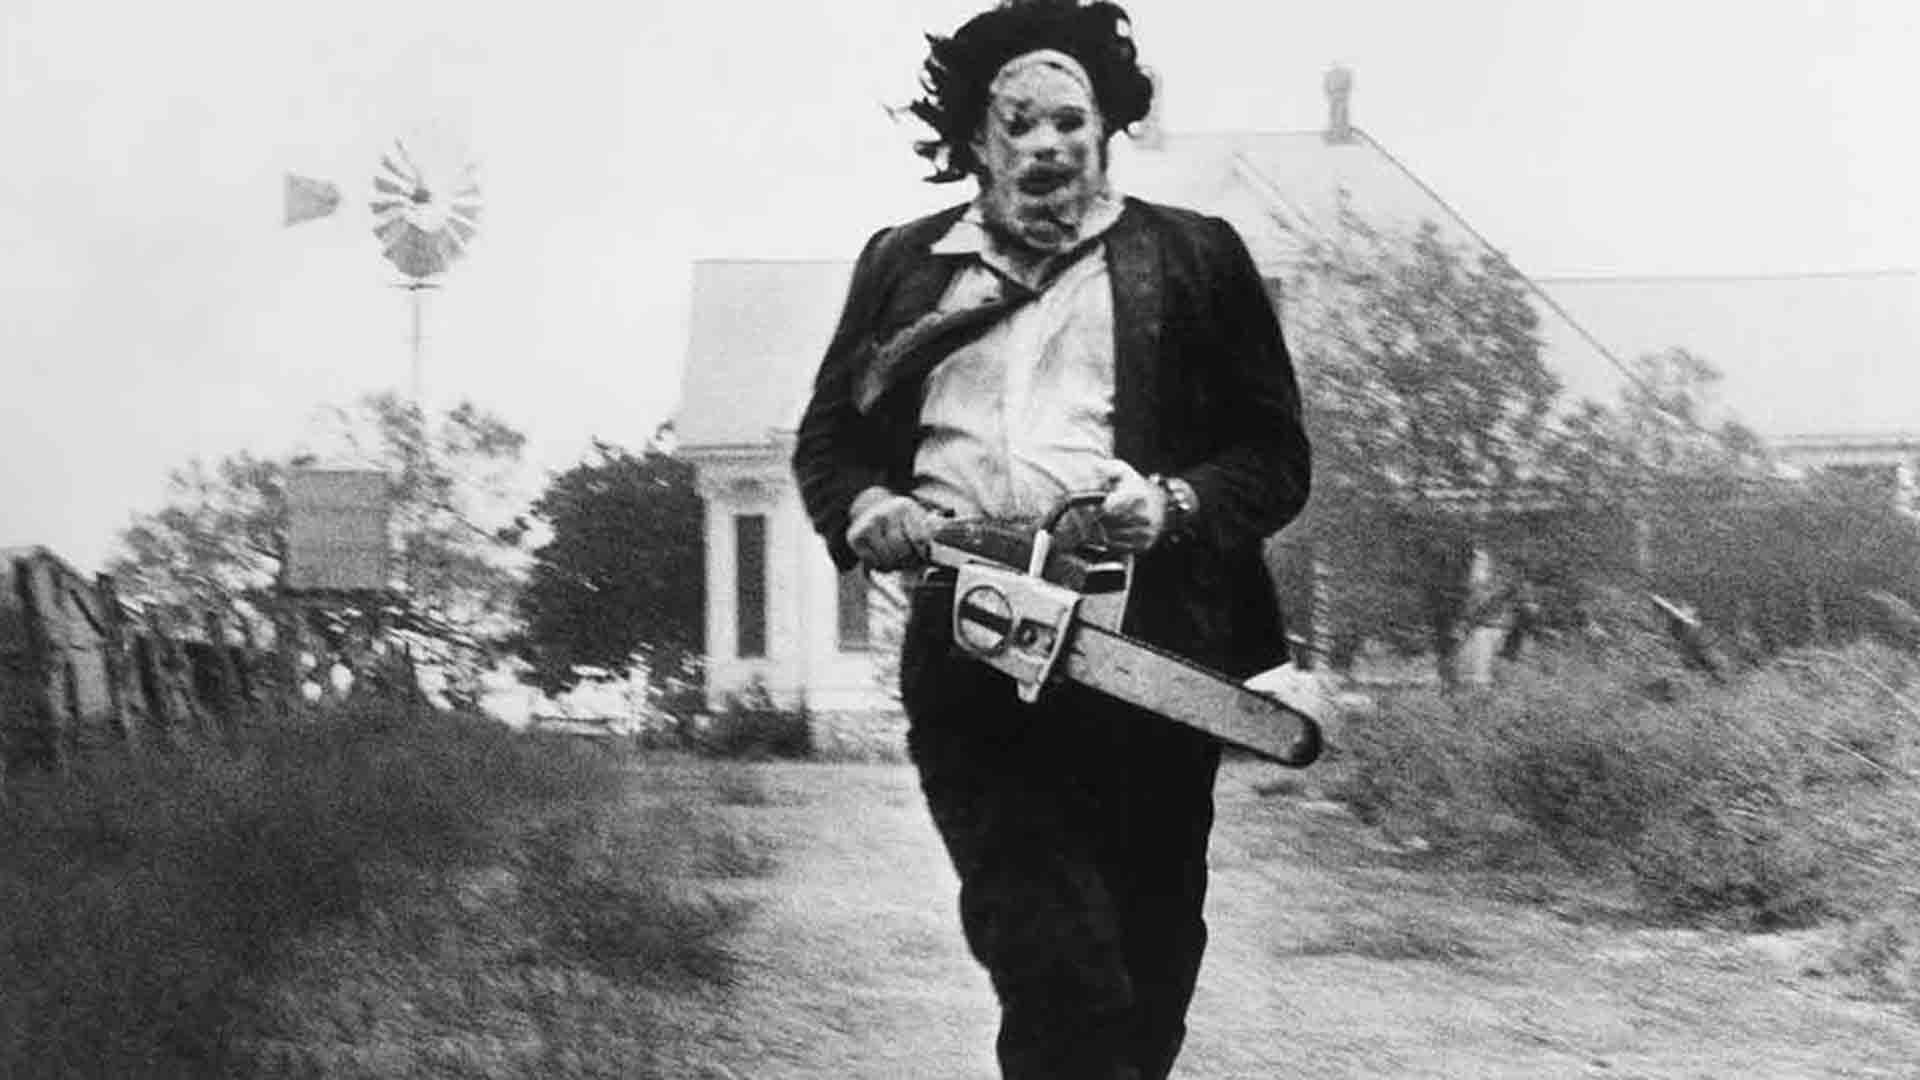 The main character of The Texas Chainsaw Massacre is running with a chainsaw